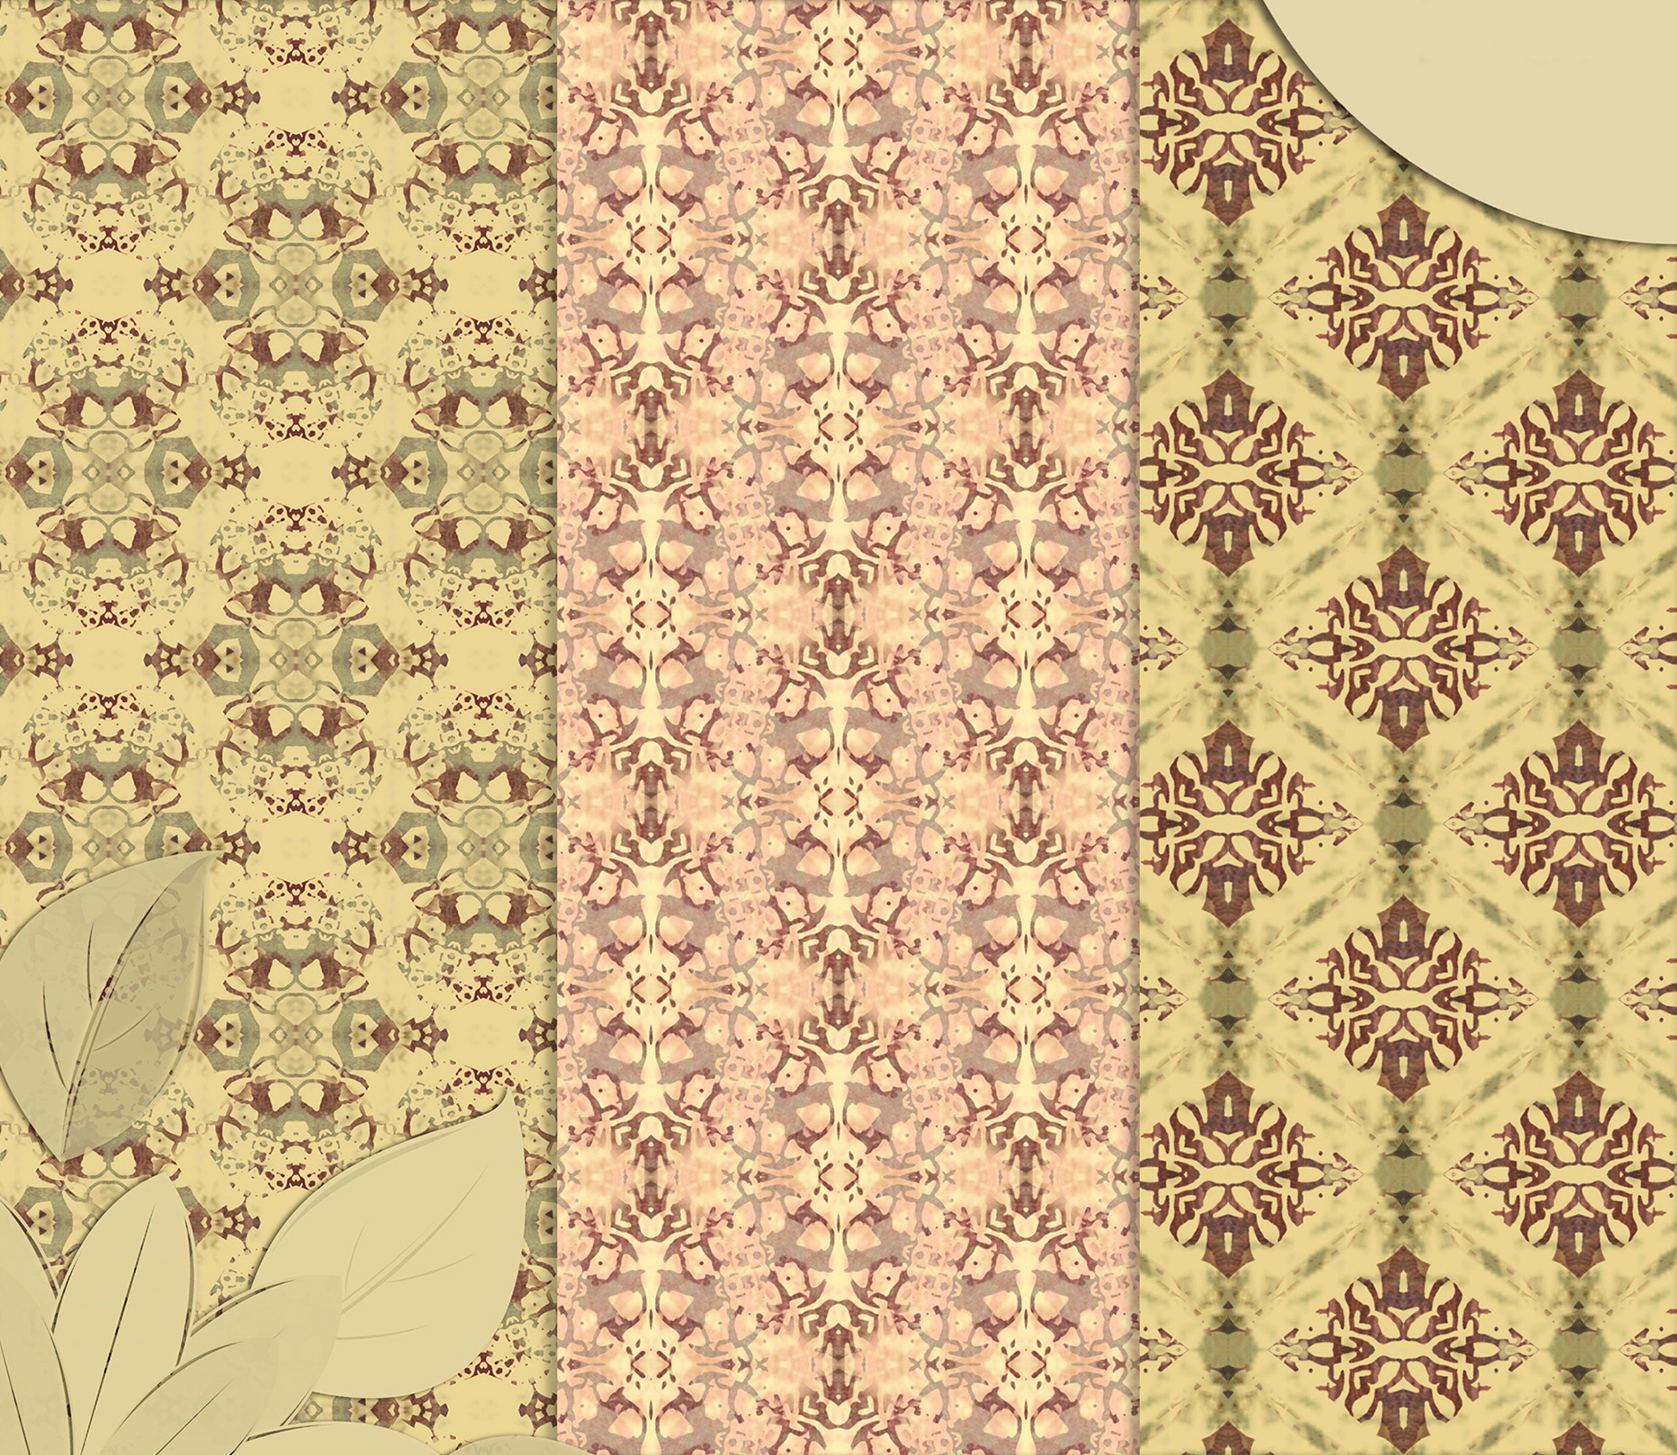 Vintage Abstract Patterns, Digital Scrapbook Paper example image 4